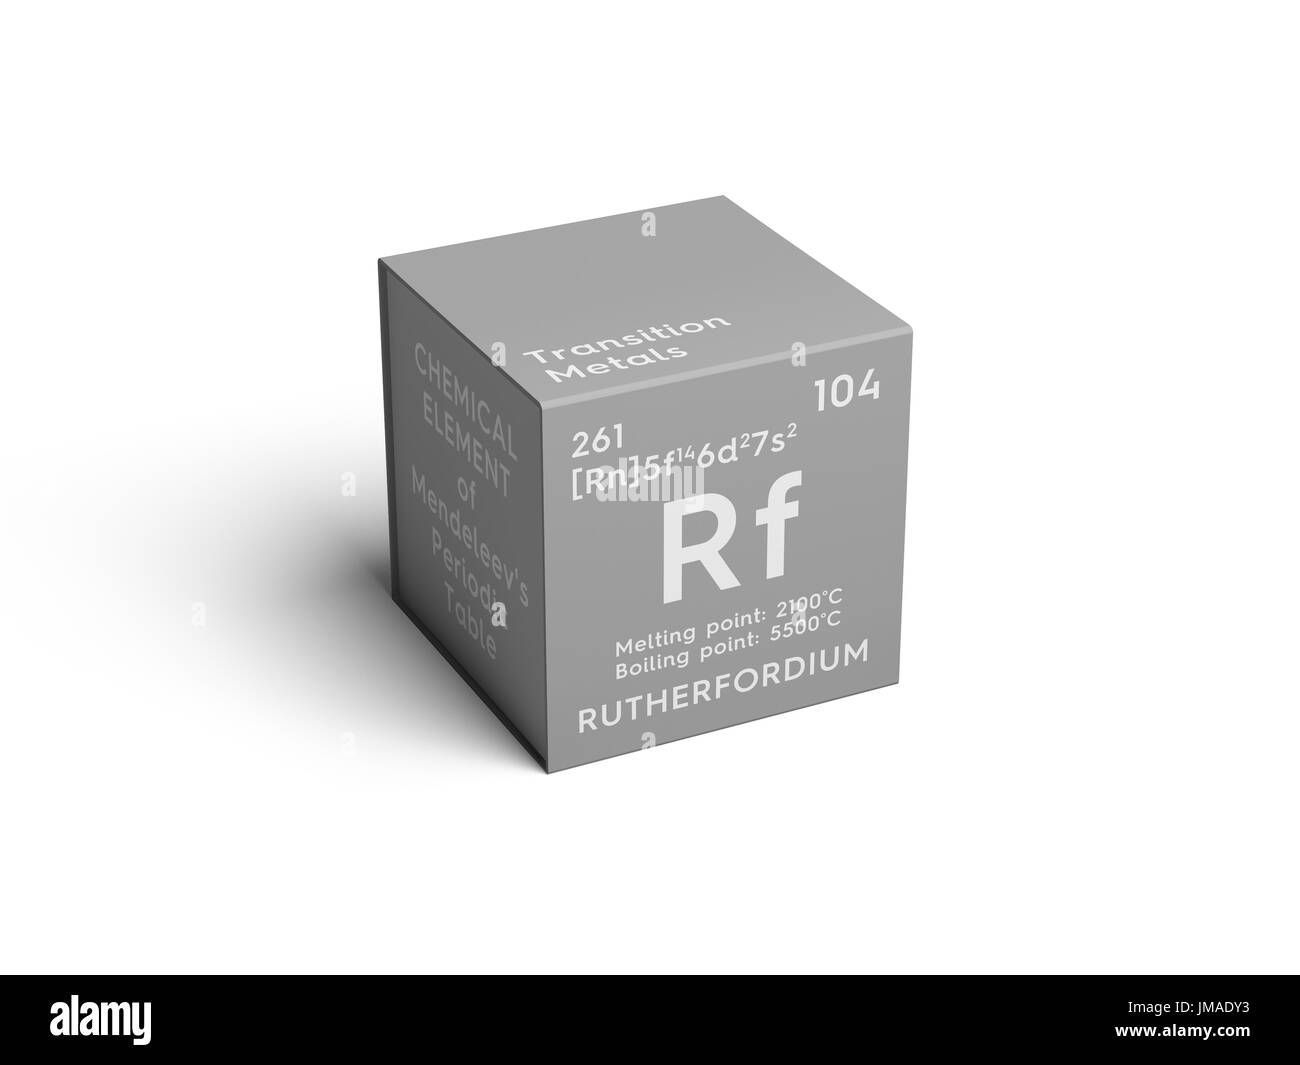 Rutherfordium. Transition metals. Chemical Element of Mendeleev's Periodic Table. Rutherfordium in square cube creative Stock Photo